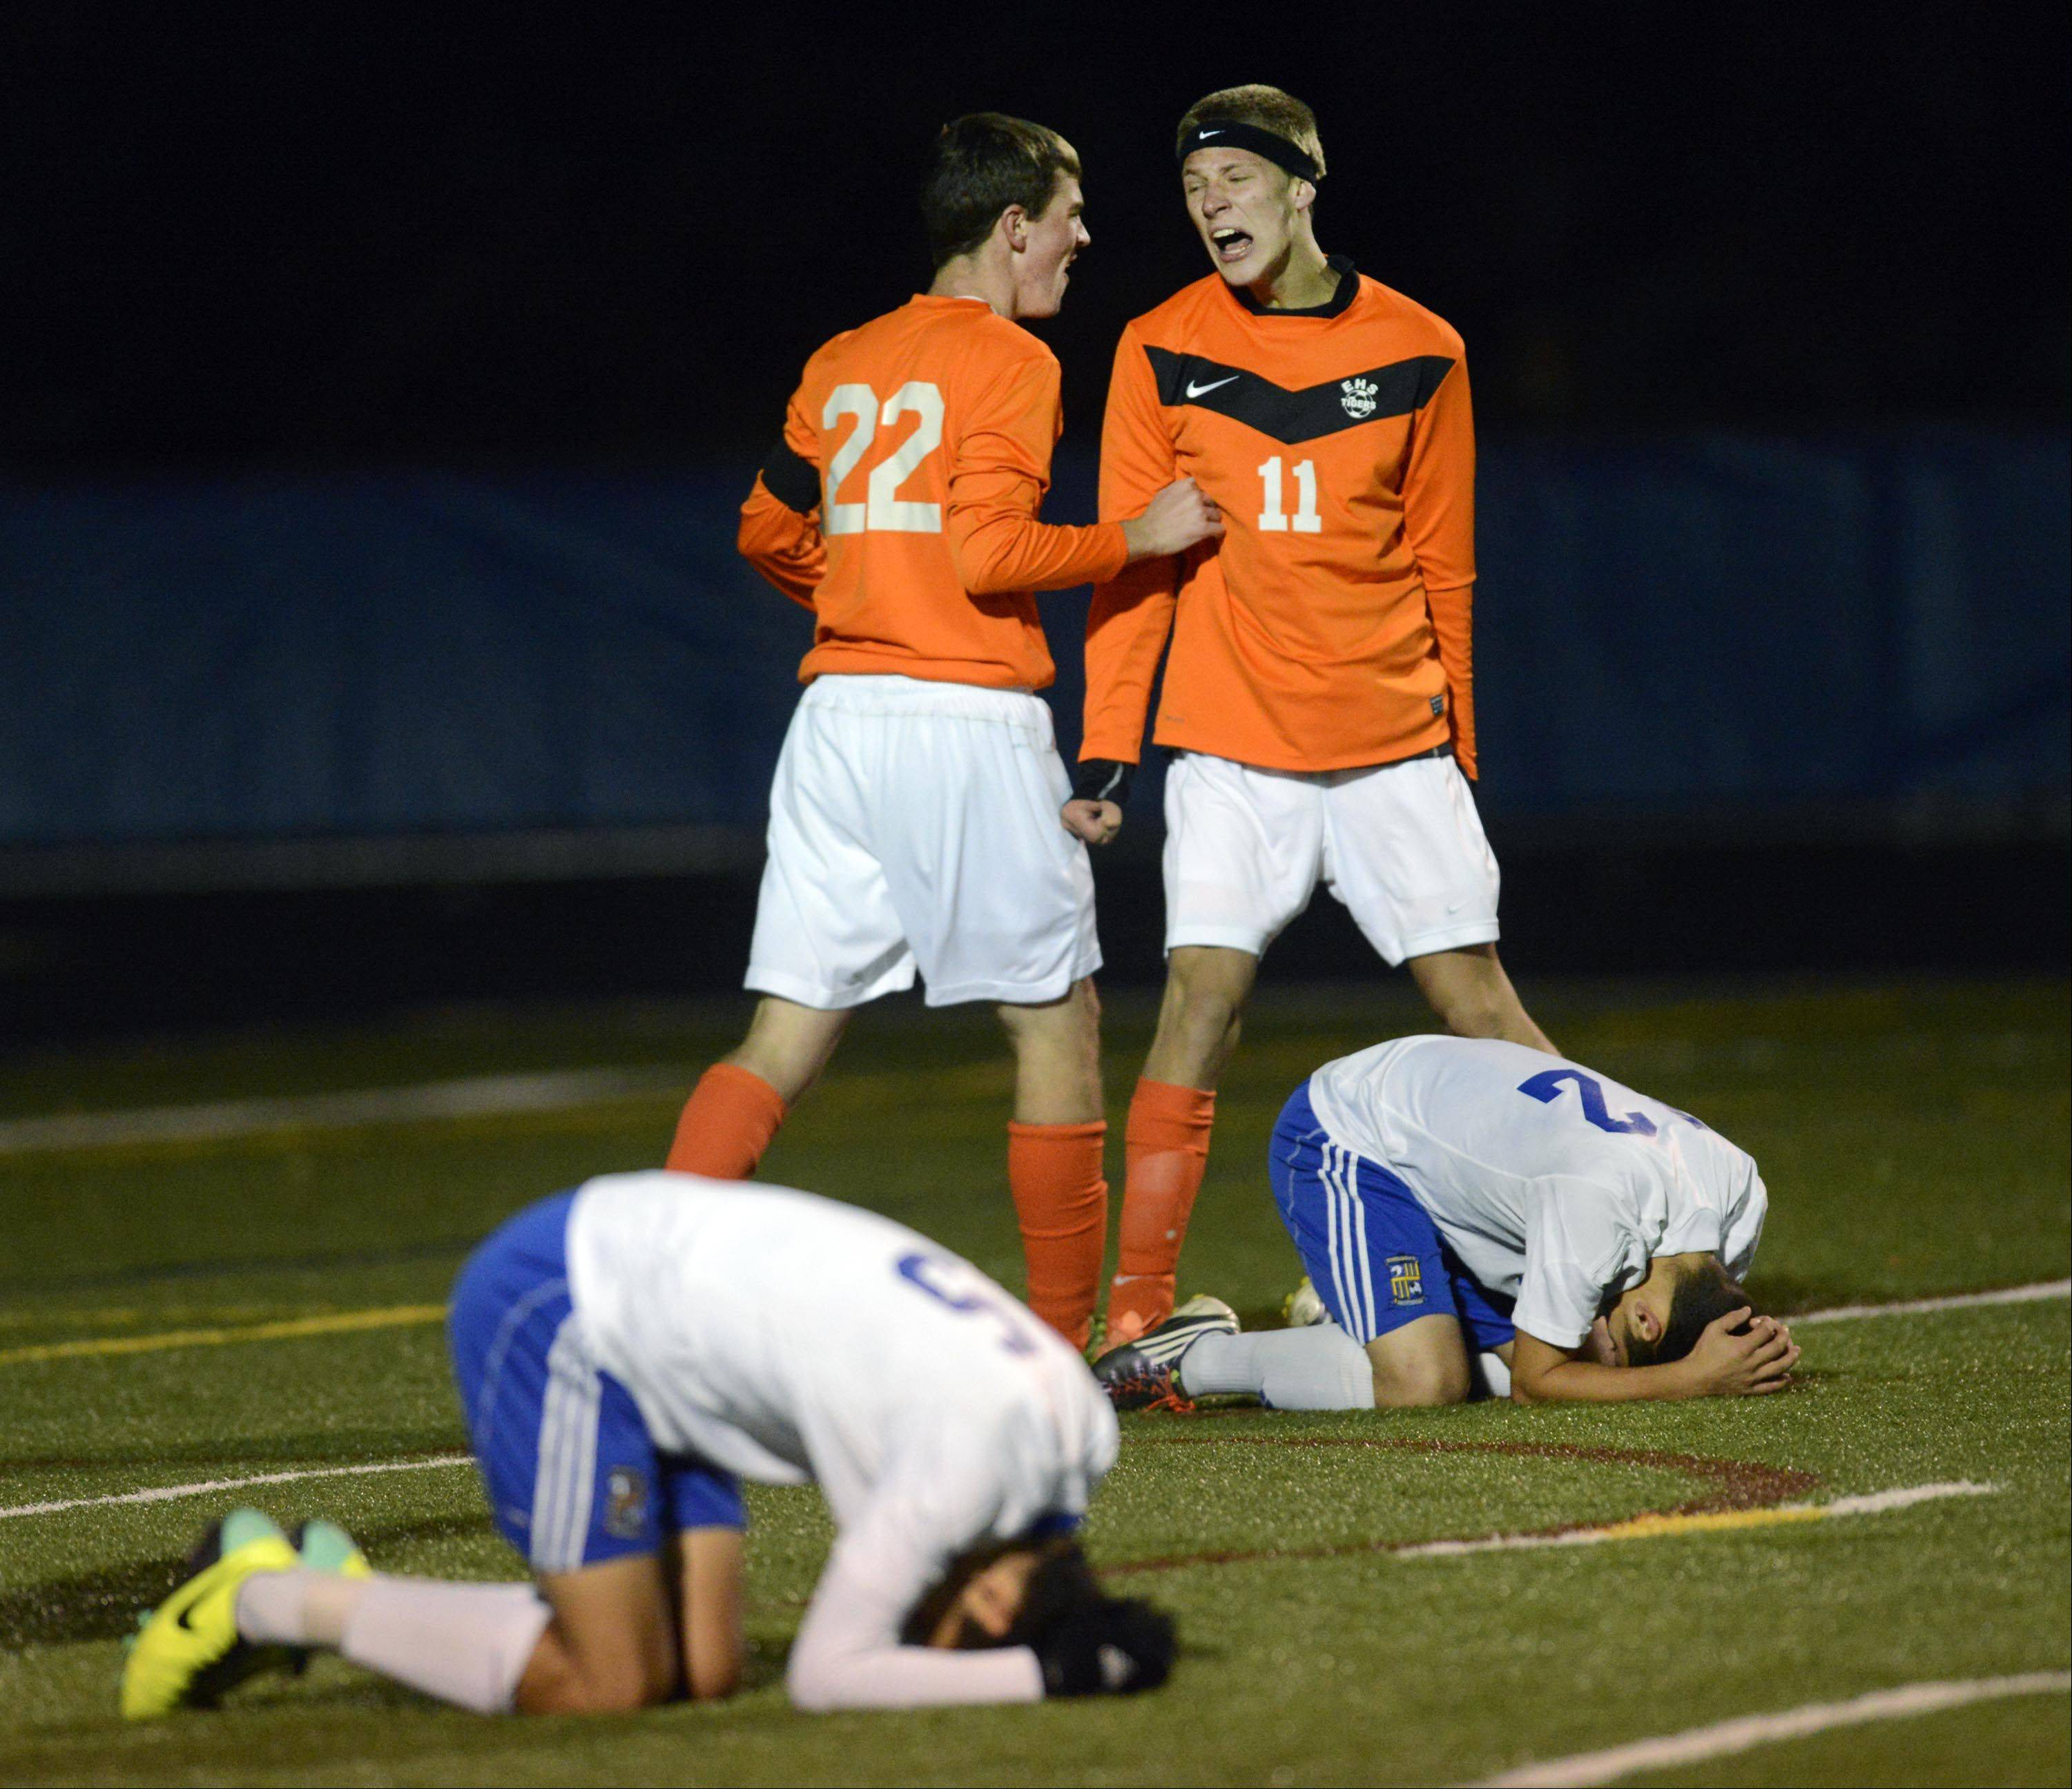 Images: Wheeling vs. Edwardsville 3A boys soccer championship